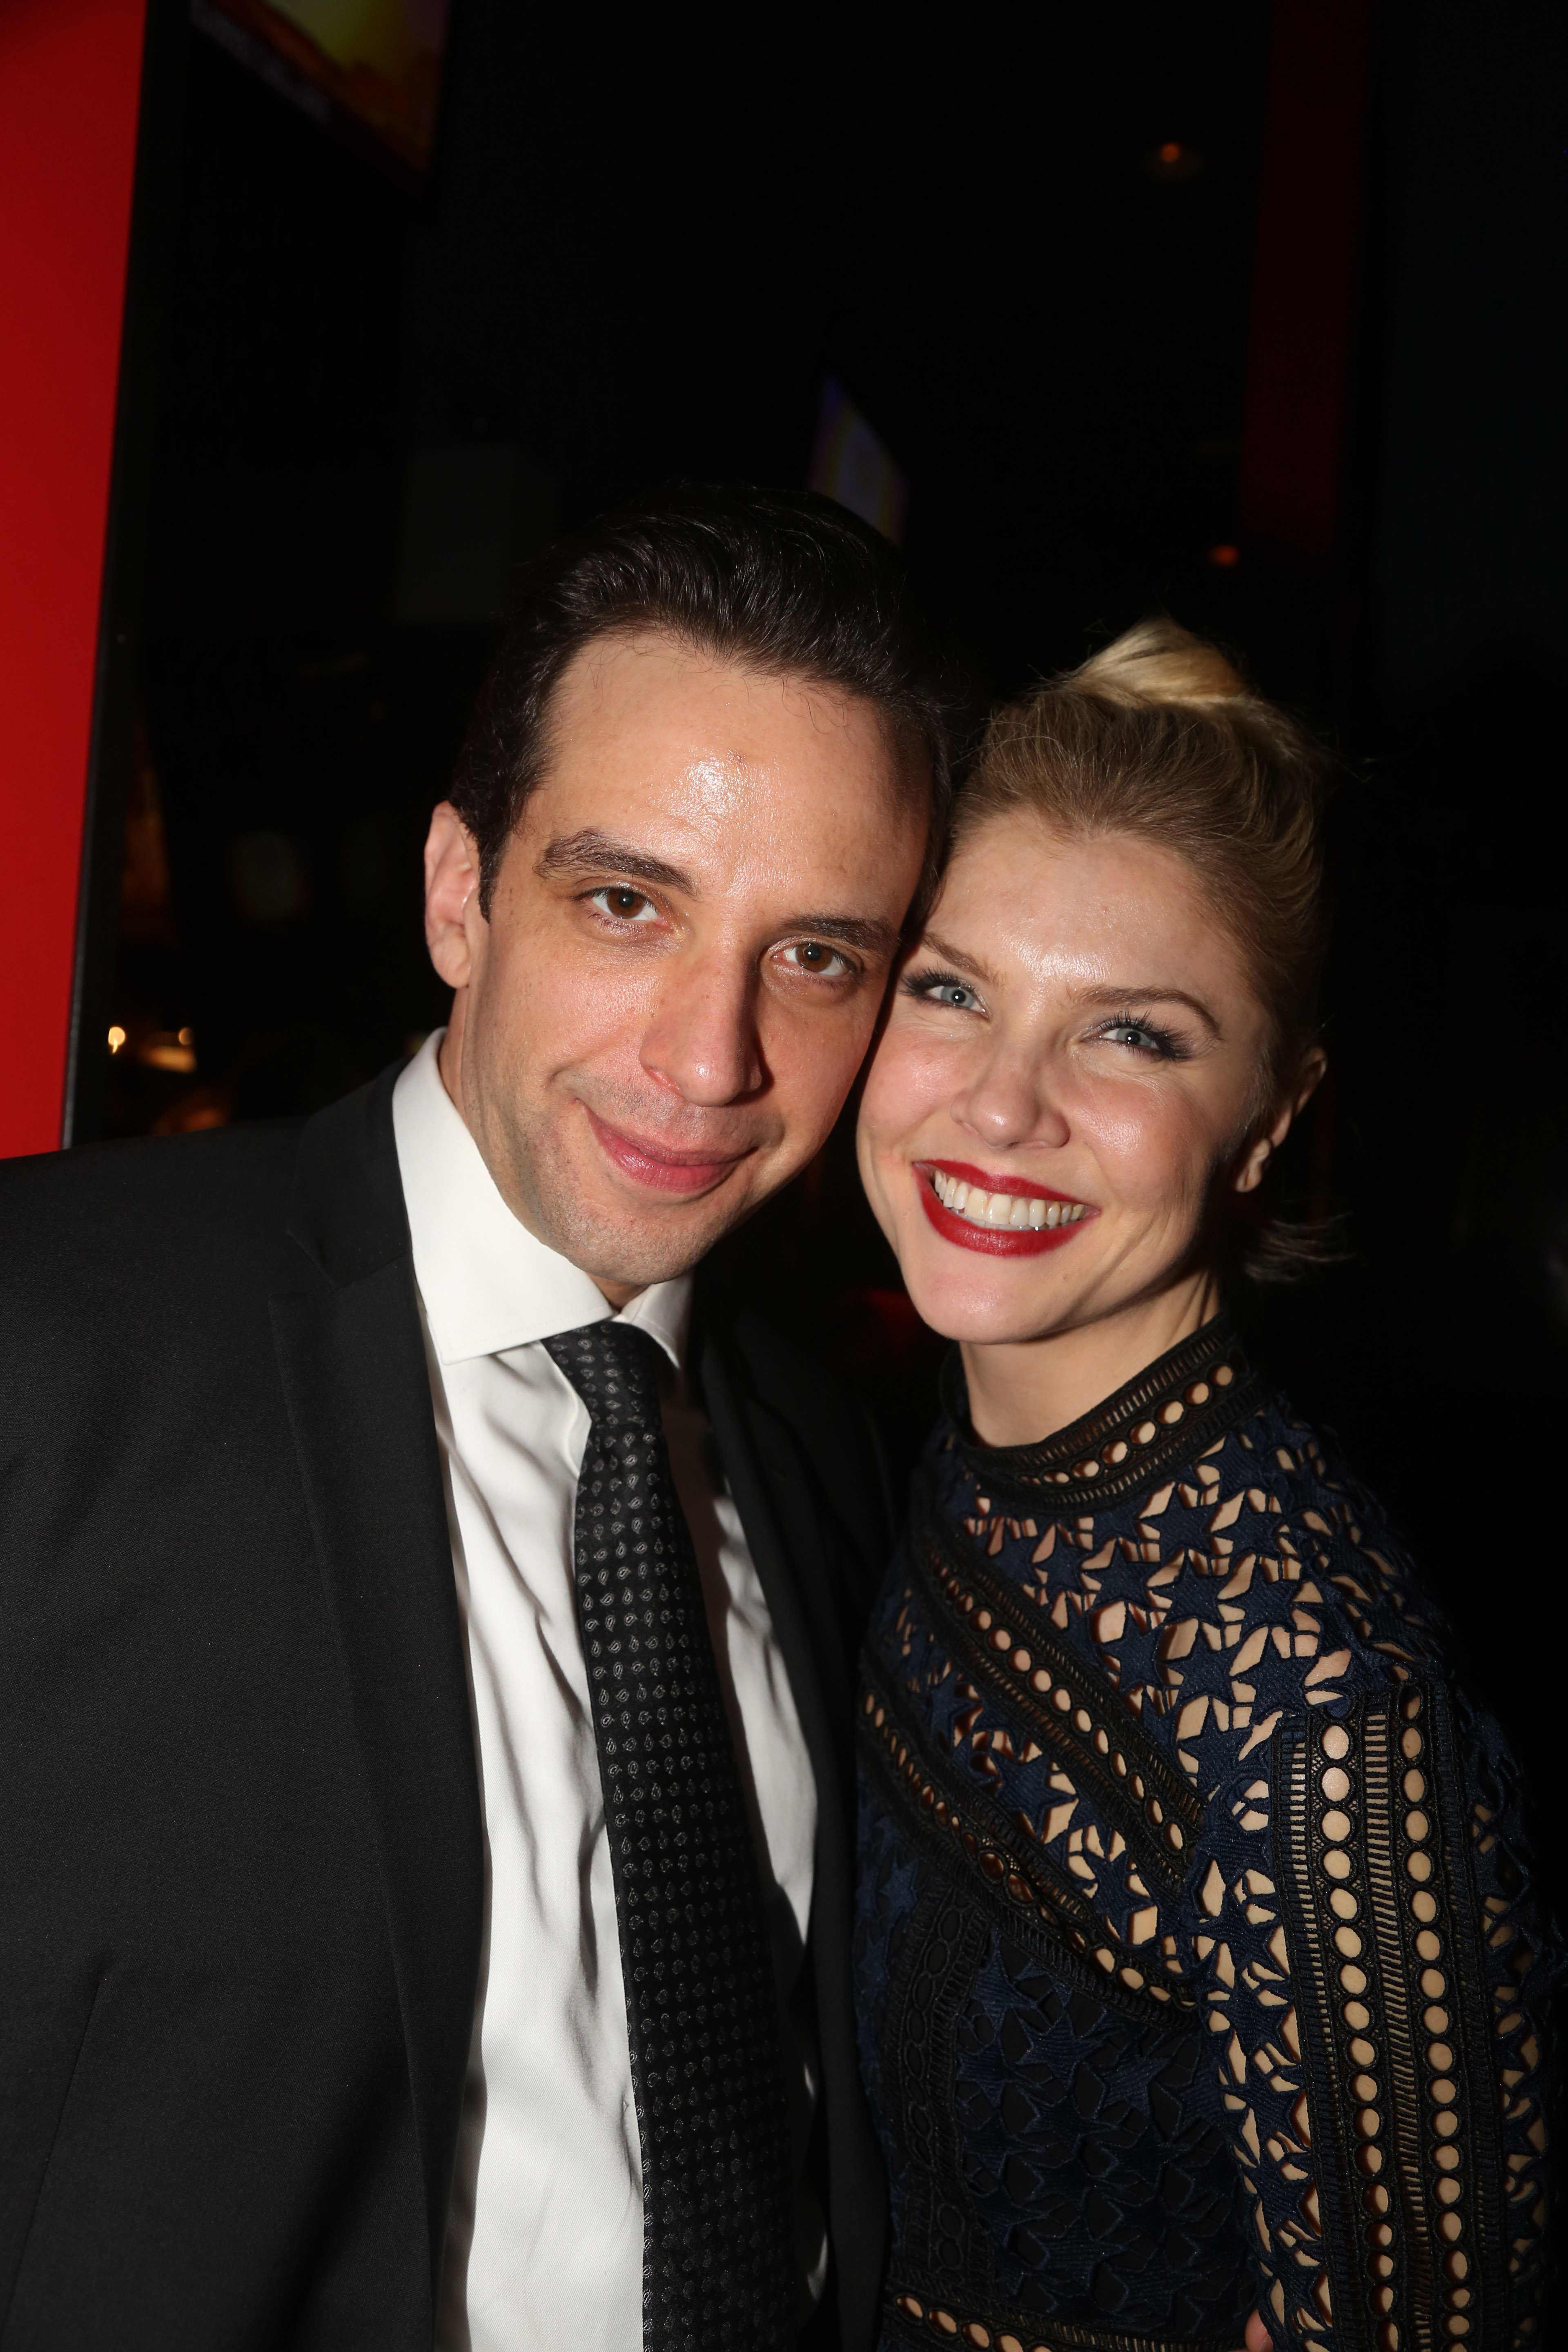 Nick Cordero and Amanda Kloots on February 19, 2017, in New York City.   Source: Getty Images.